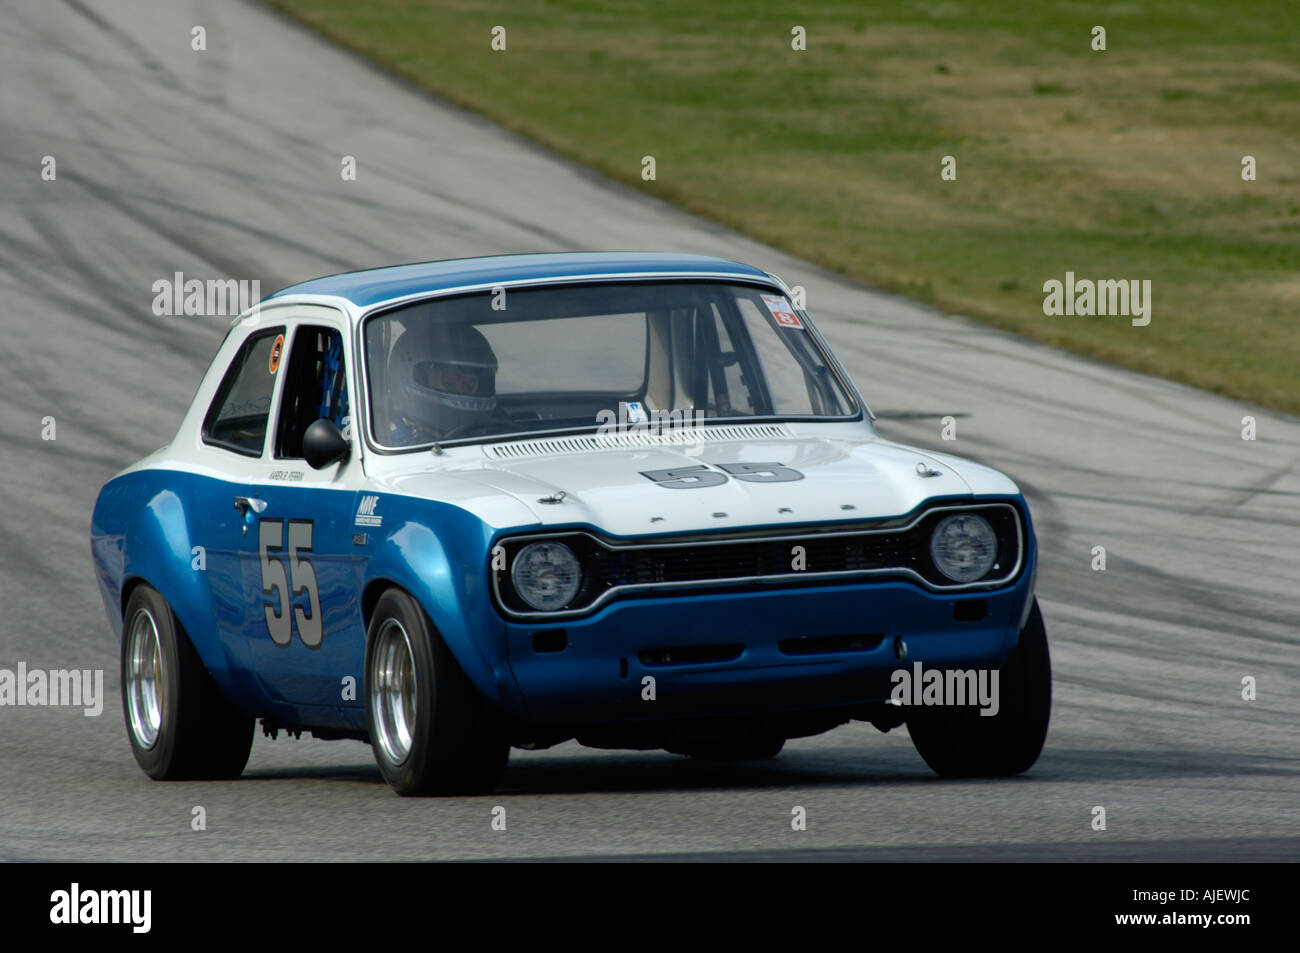 Karen Perrin Races Her  Ford Escort Rs At The  Kohler International Challenge With Brian